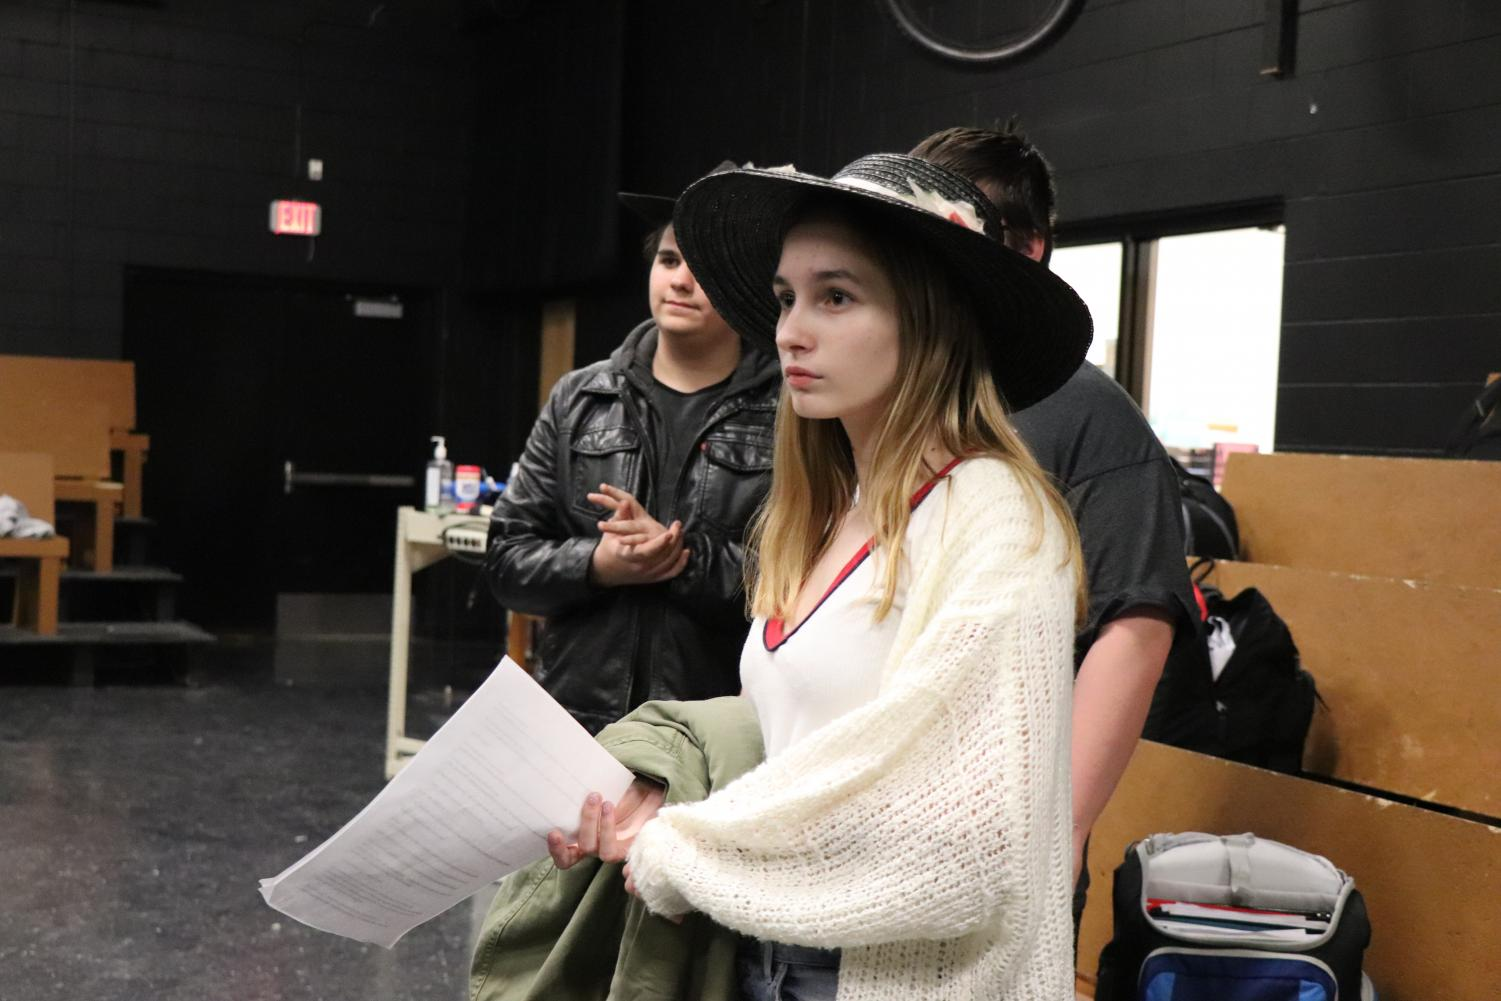 Sophomore Emily Hamlin practices for her drama exam. Drama students had an on-stage acting portion of their exam.